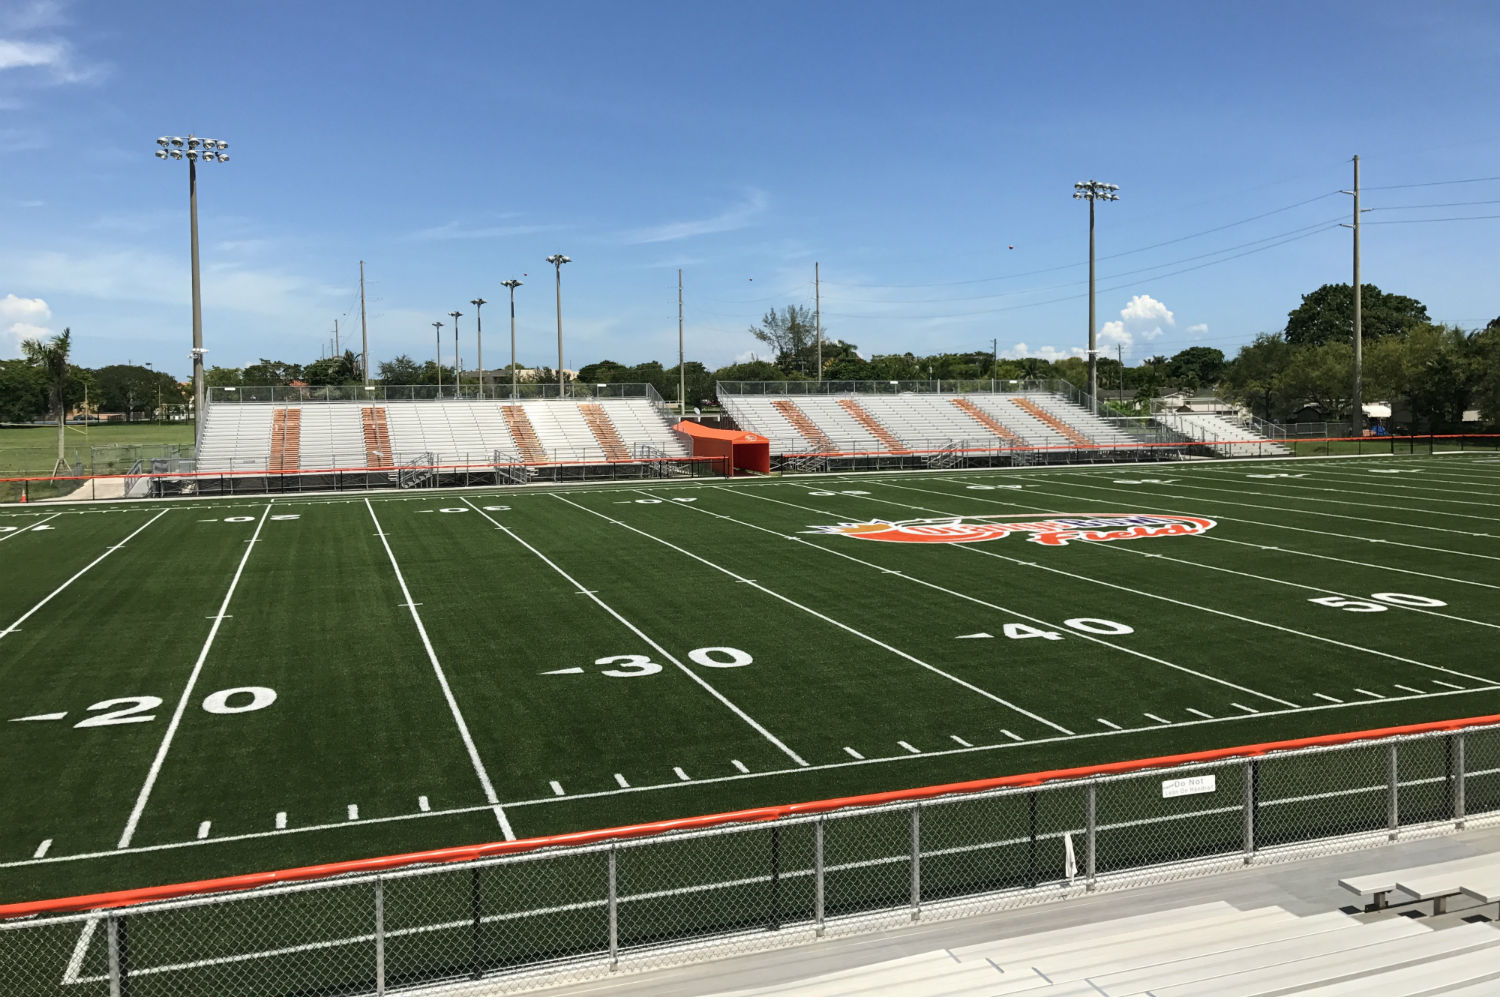 The Orange Bowl Field at Harris Field Park is the Orange Bowl's fourth Legacy Gift to the South Florida community. WSDG was reached by Groovyland Corp to design the sound system design and systems integration for the field's rejuvenation. Field at daylight.